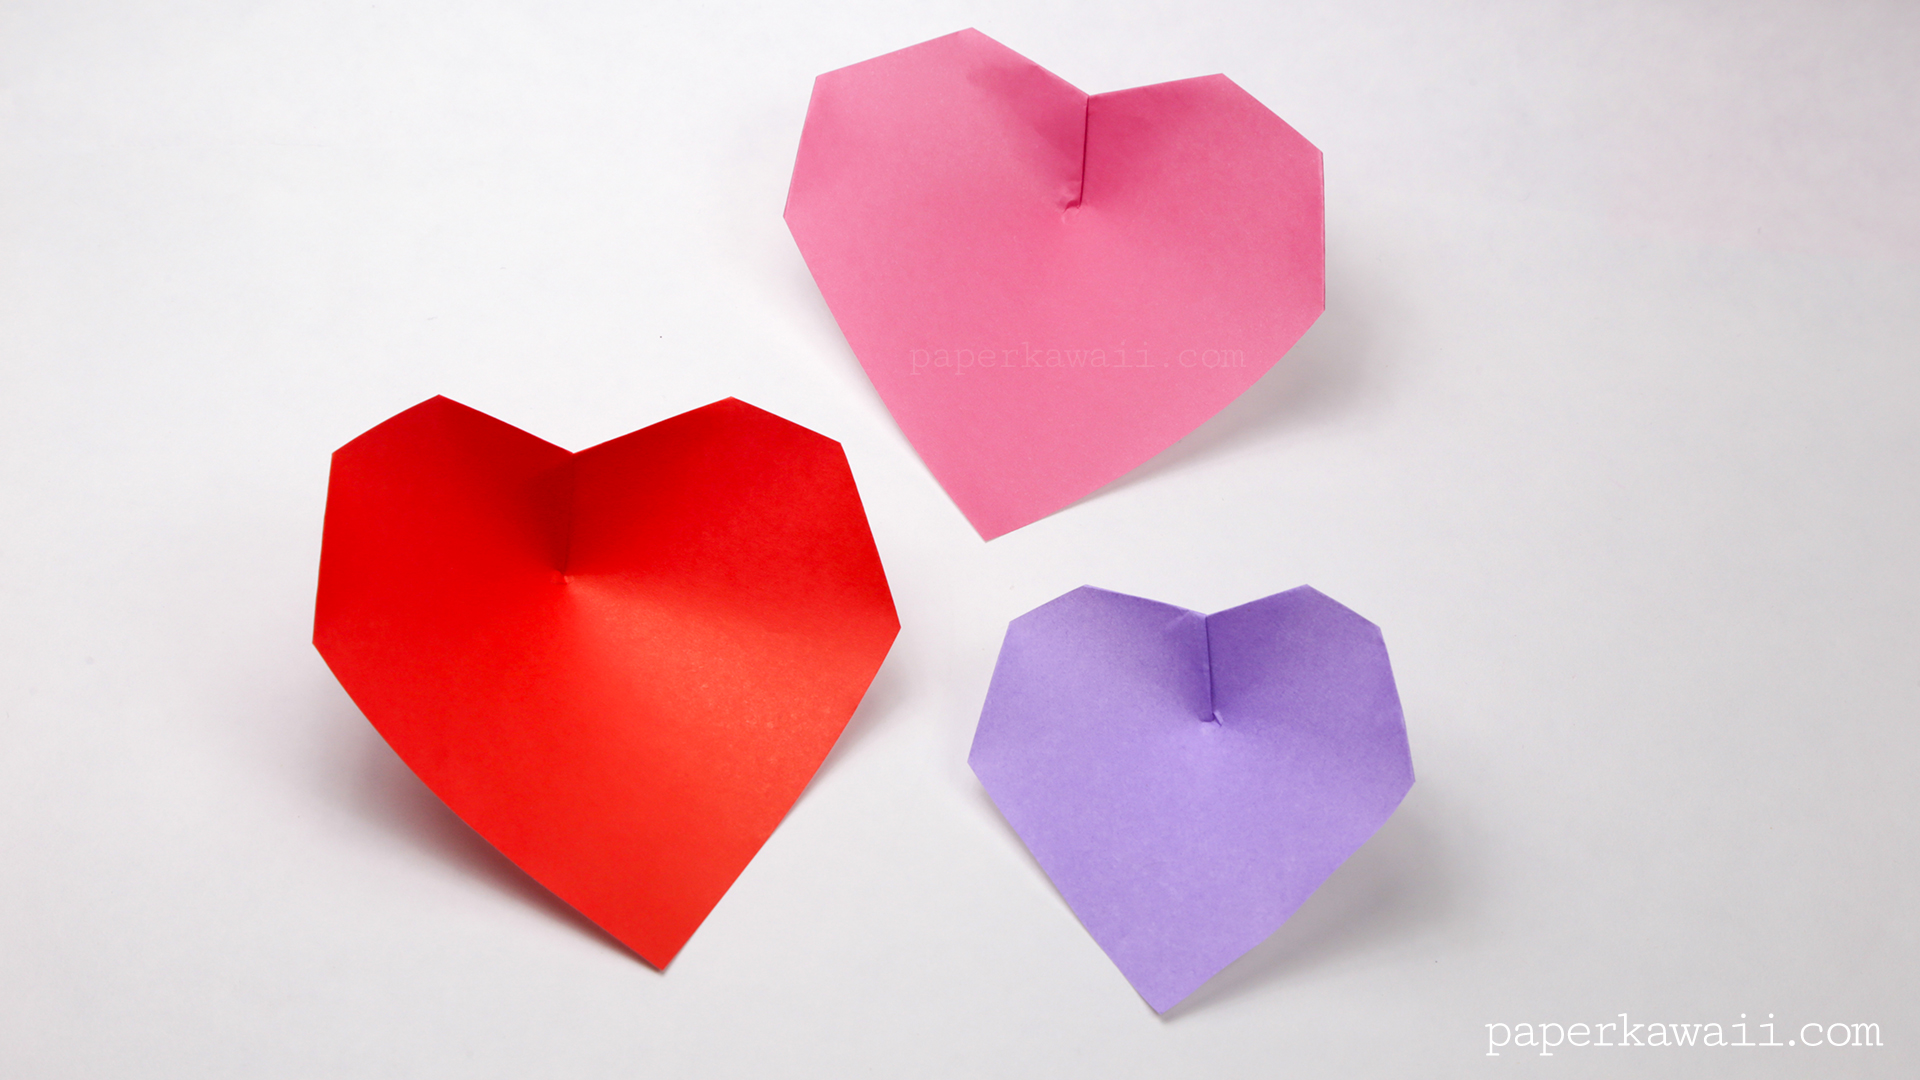 Super Easy Origami Heart Instructions - Paper Kawaii - photo#4